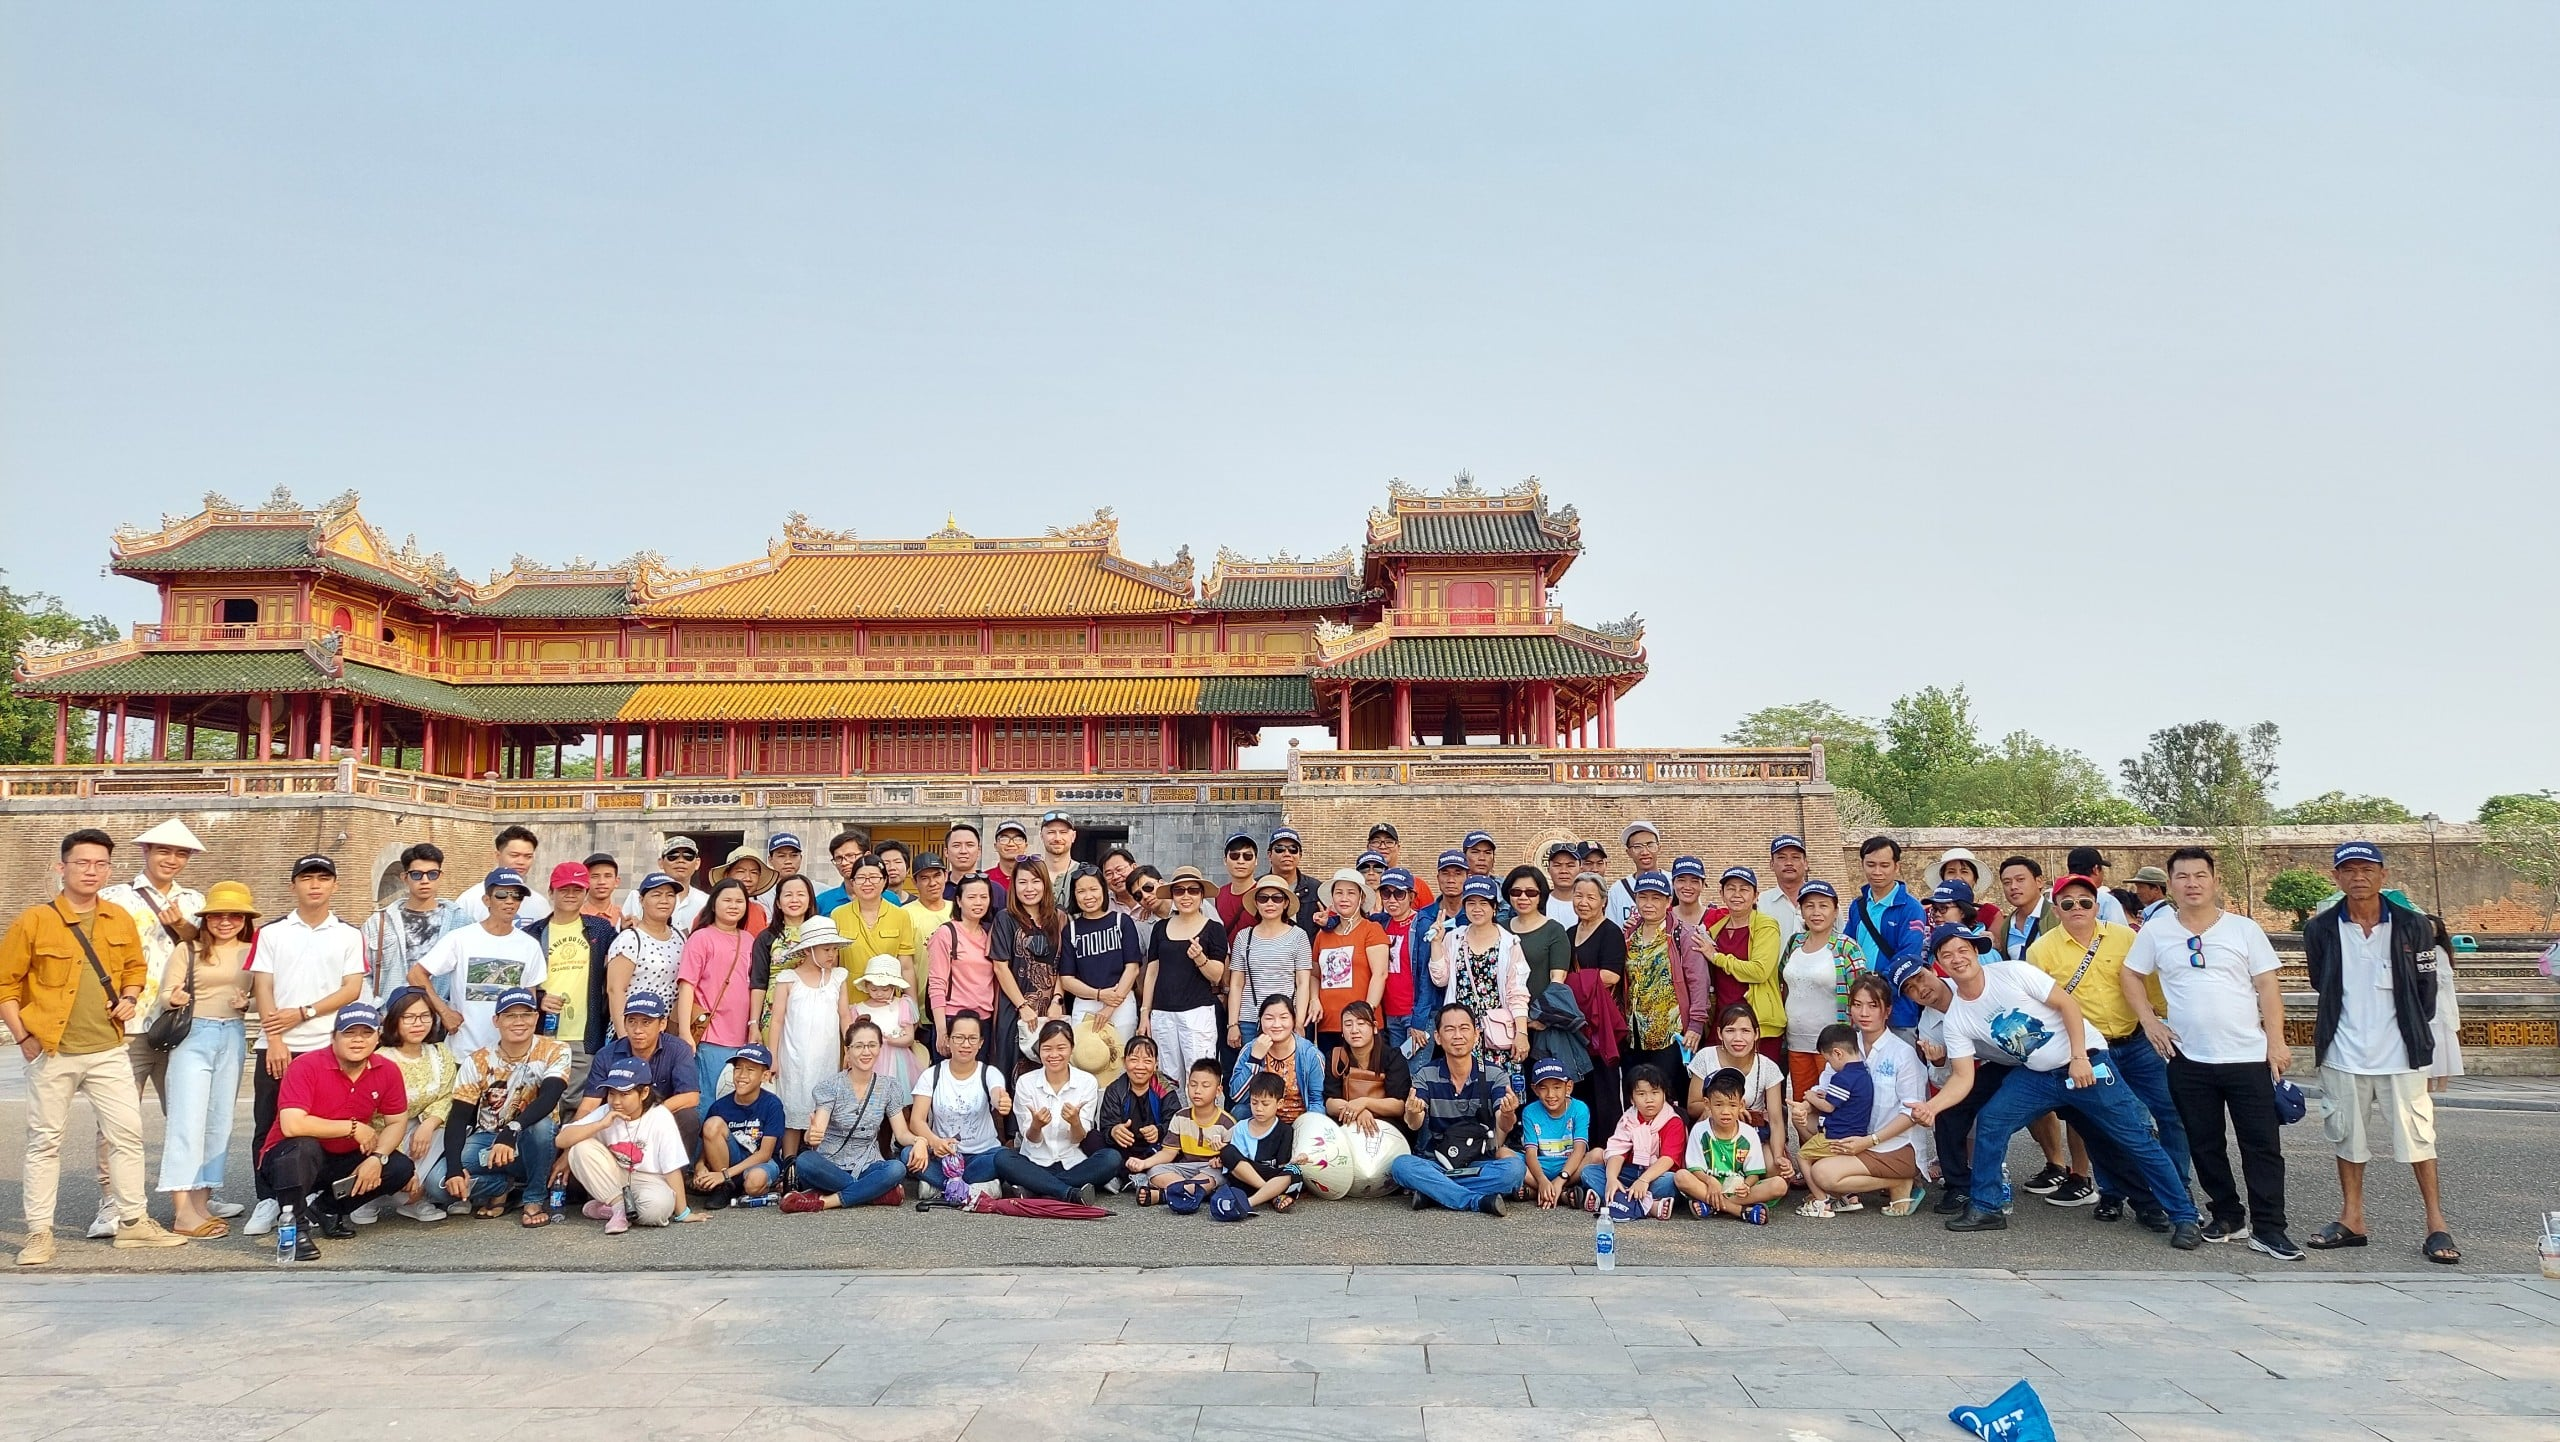 Hue Citadel attractive the tourists when they go to tren Central of Vietnam